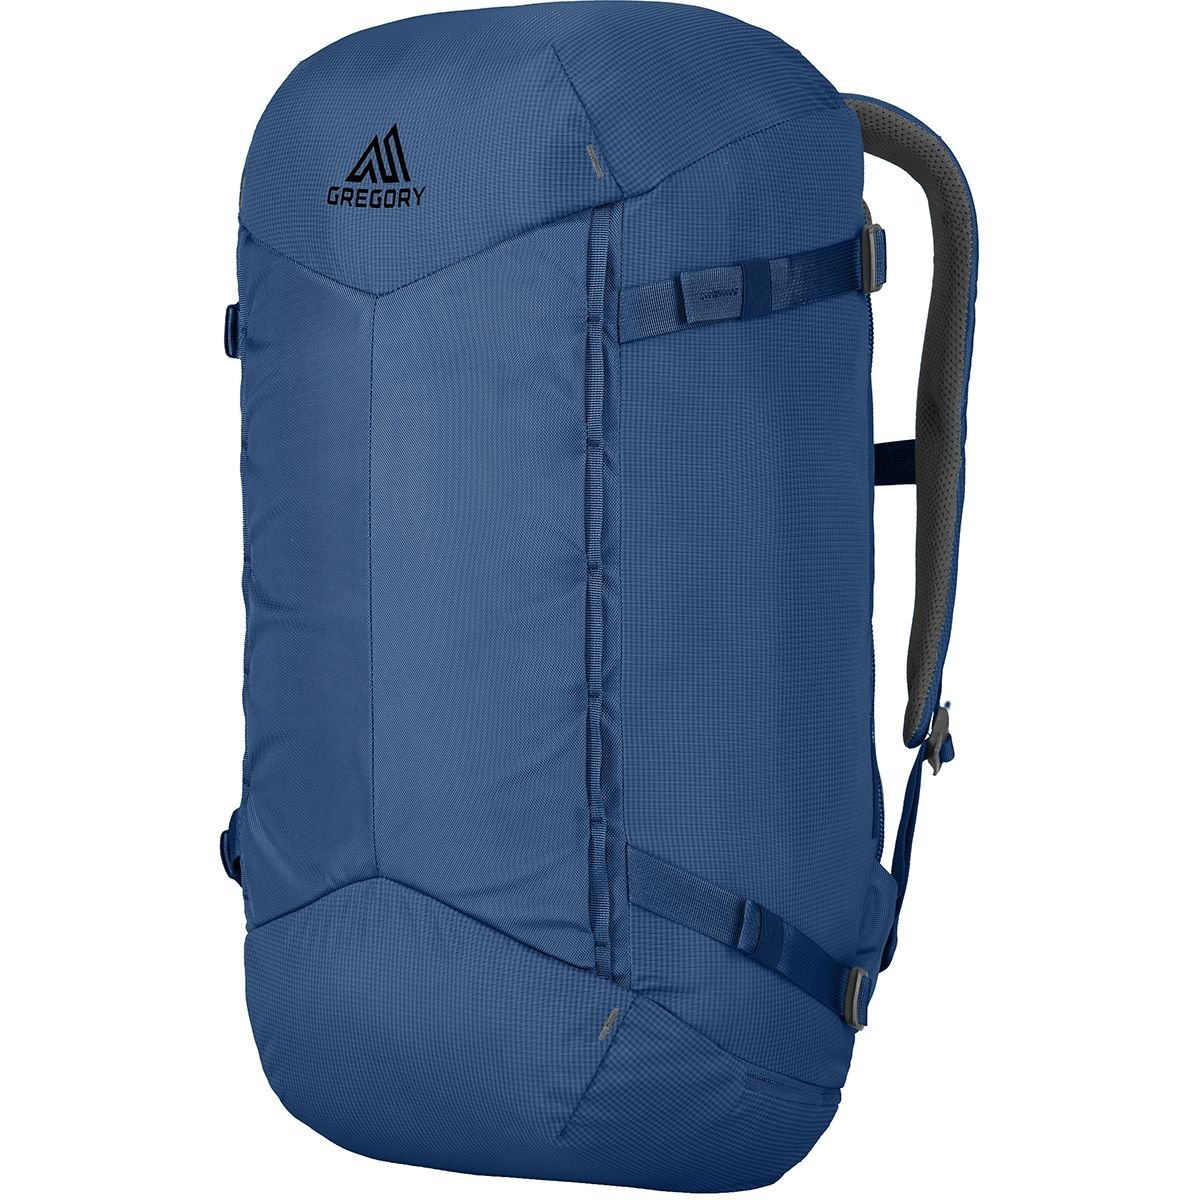 Gregory Mountain Products Compass 40 Liter Daypack, Indigo Blue, One Size